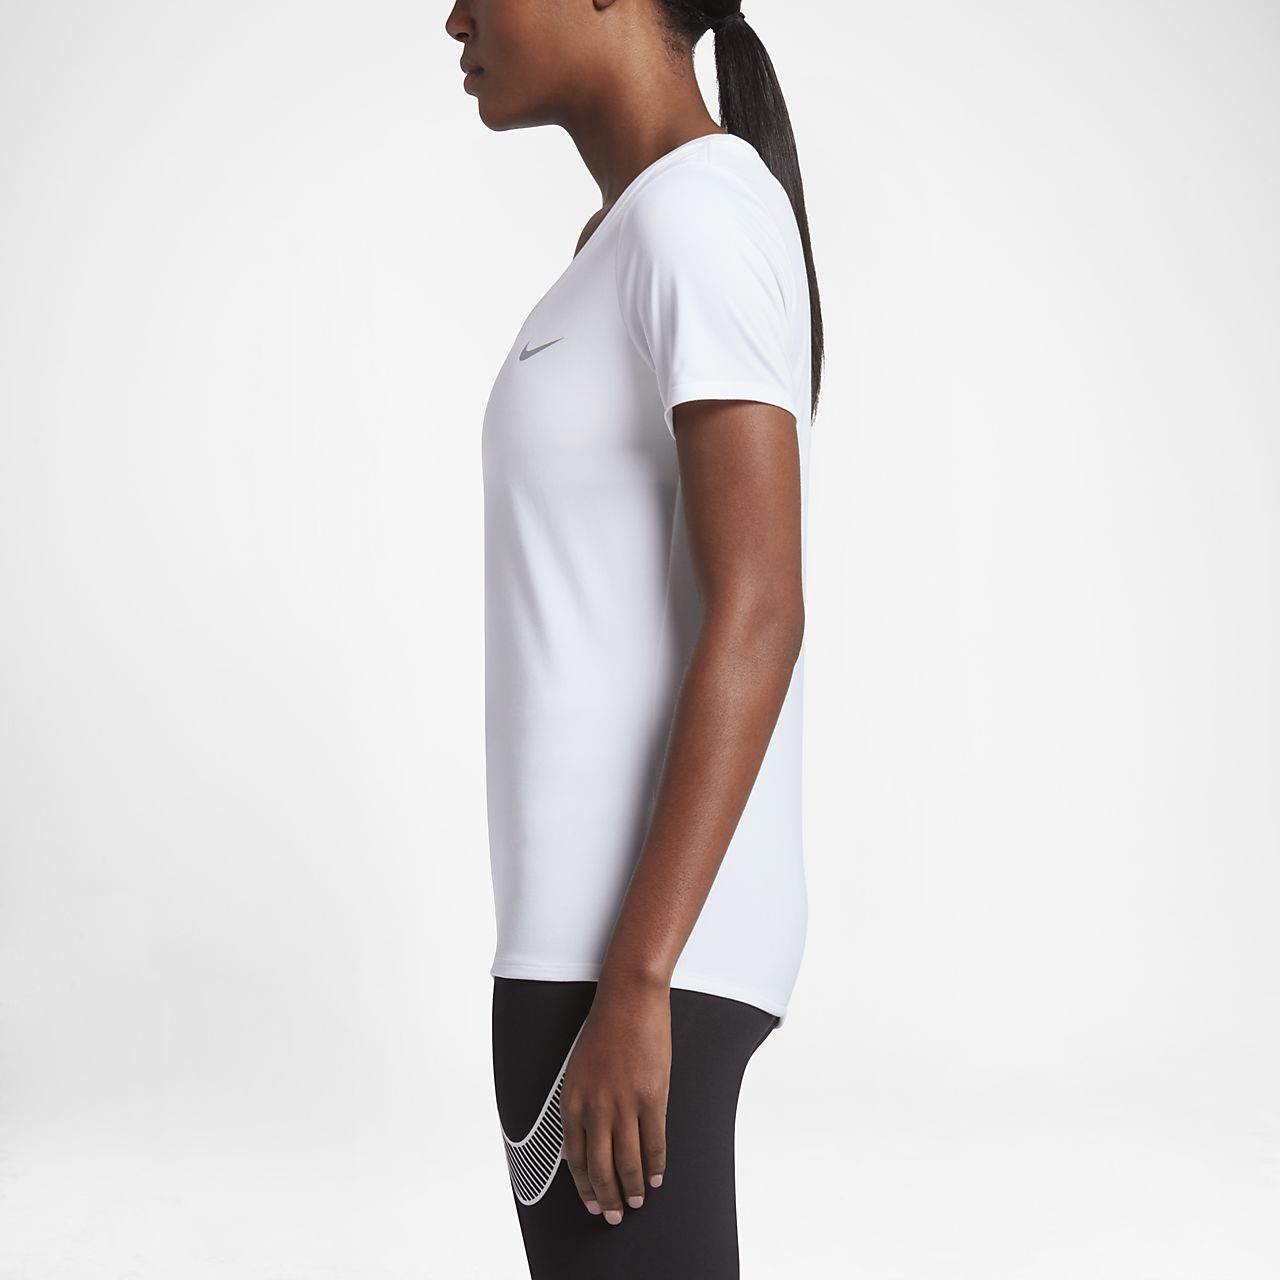 c30bcd299f7 Nike Dri-FIT Women s Training T-Shirt. Nike.com